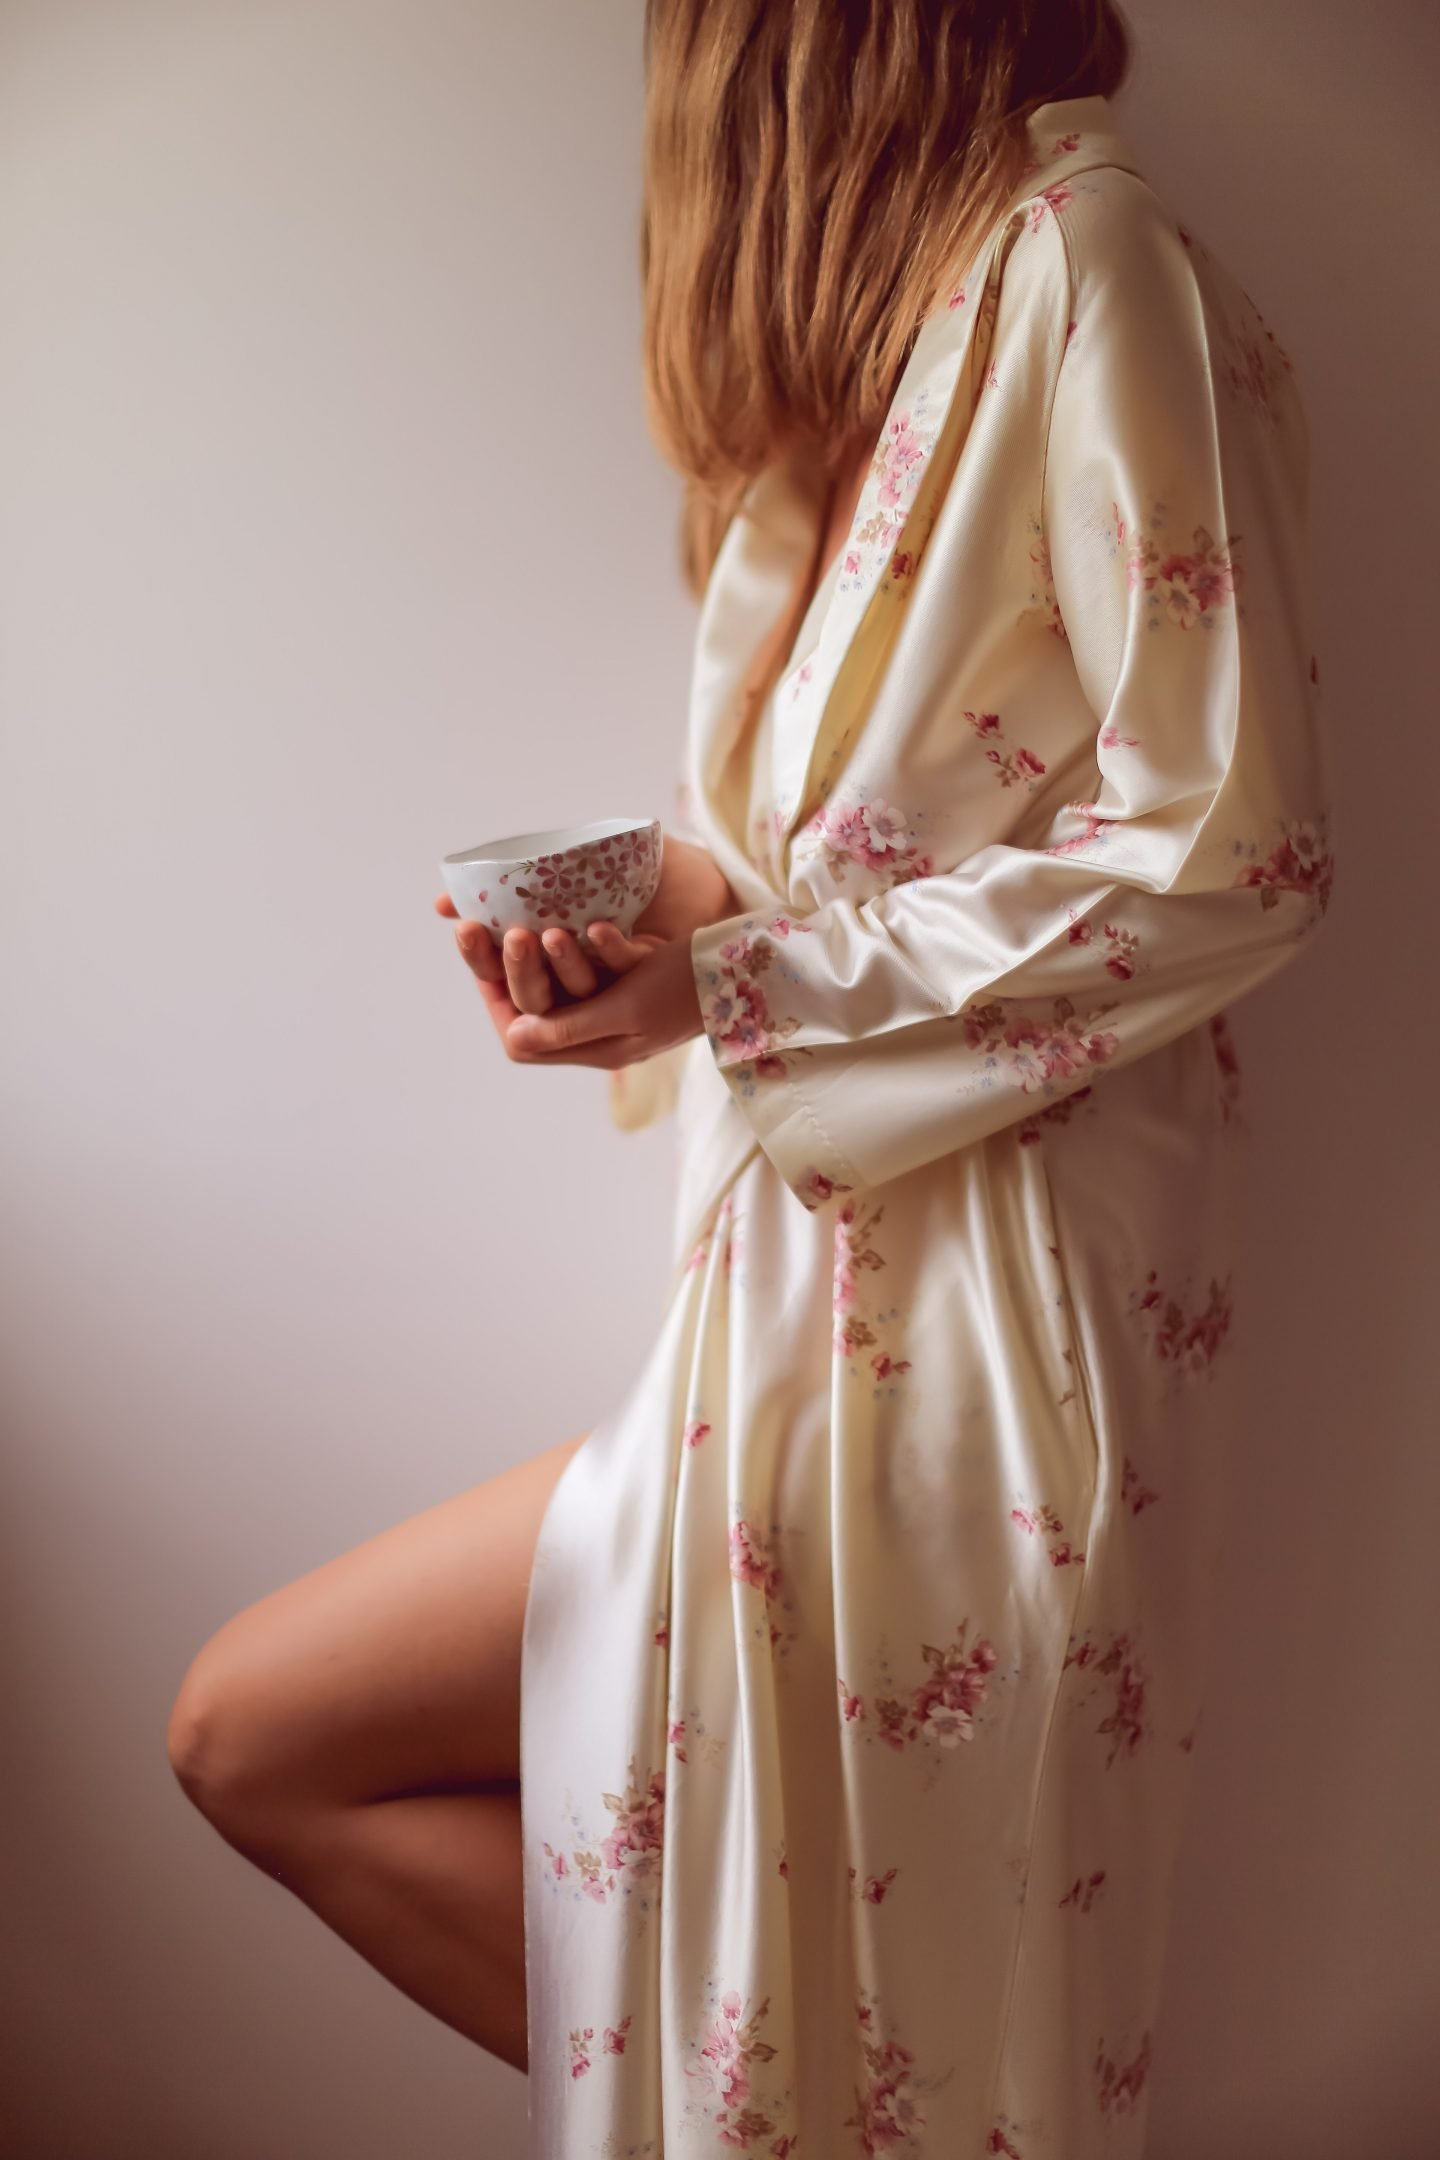 Woman in a robe practicing self care